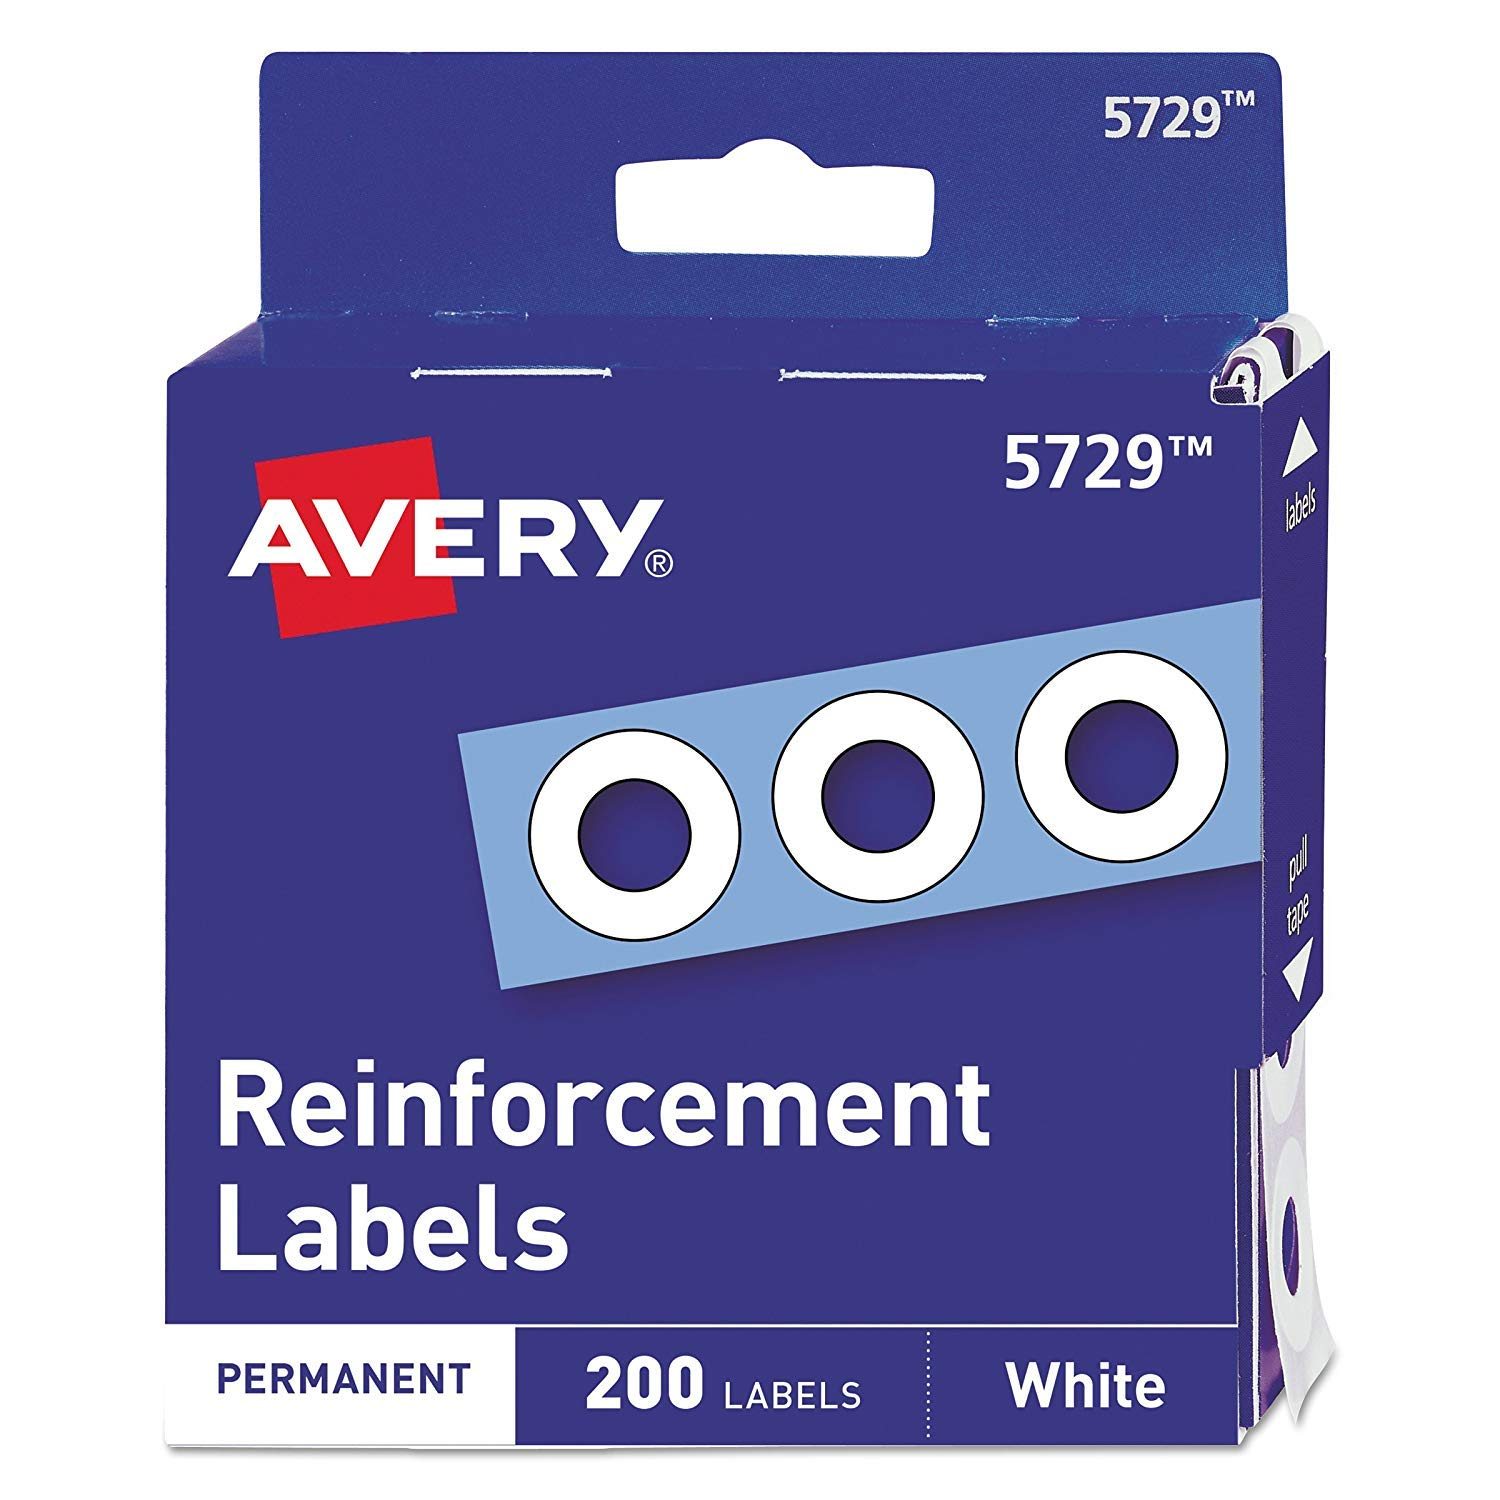 05729 Dispenser Pack Hole Reinforcements, 1/4'' Dia, White, Pack of 20, 4000 Labels Total by Avery